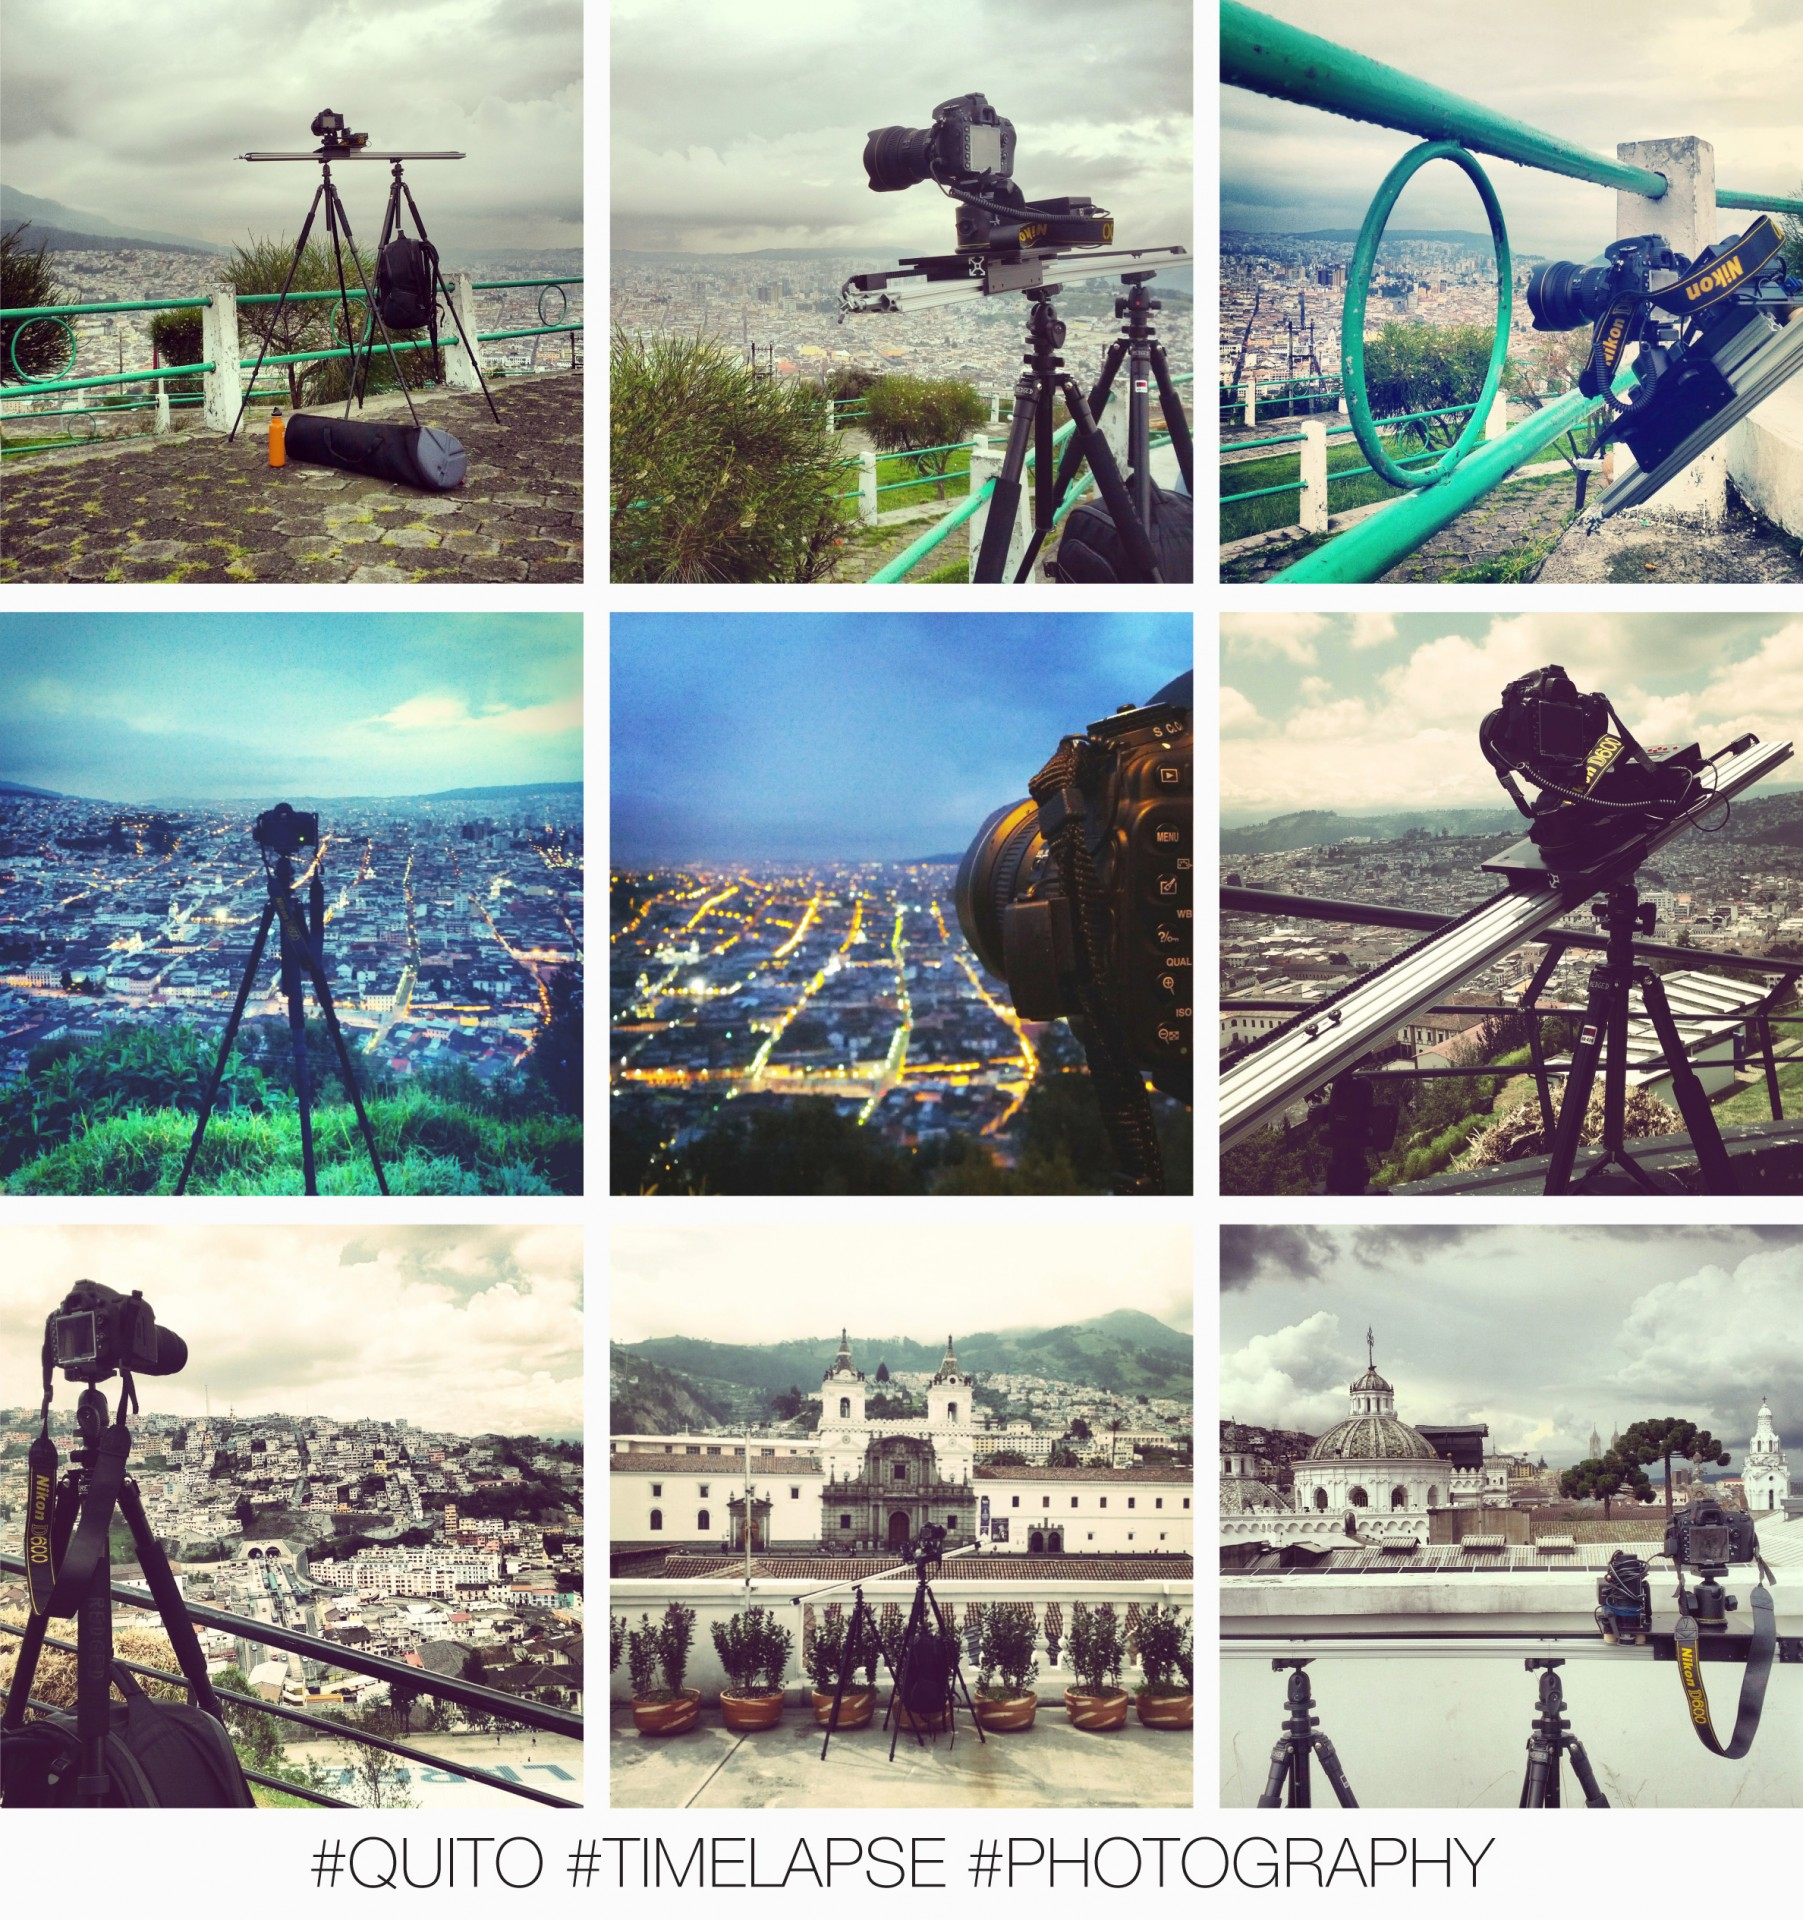 #quito #timelapse #photography